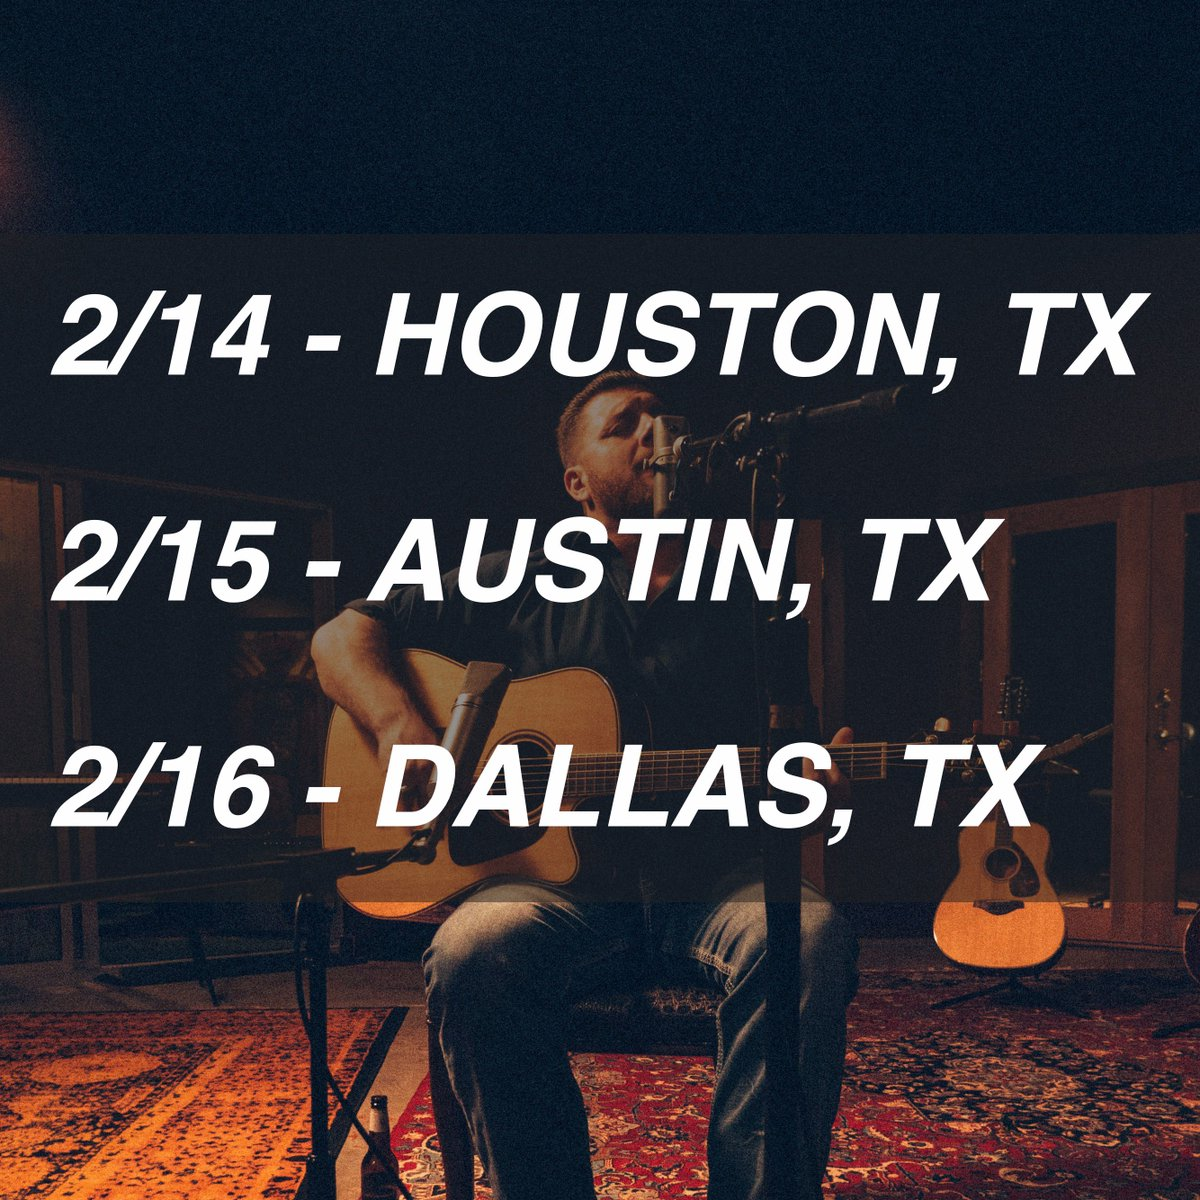 I'm excited to be performing three shows in Texas this February with @MarcBroussard! We'll be hitting The Heights Theater in Houston, Antone's in Austin and The Kessler in Dallas.  Visit my website http://www.davidgracemusic.com/tour for tickets